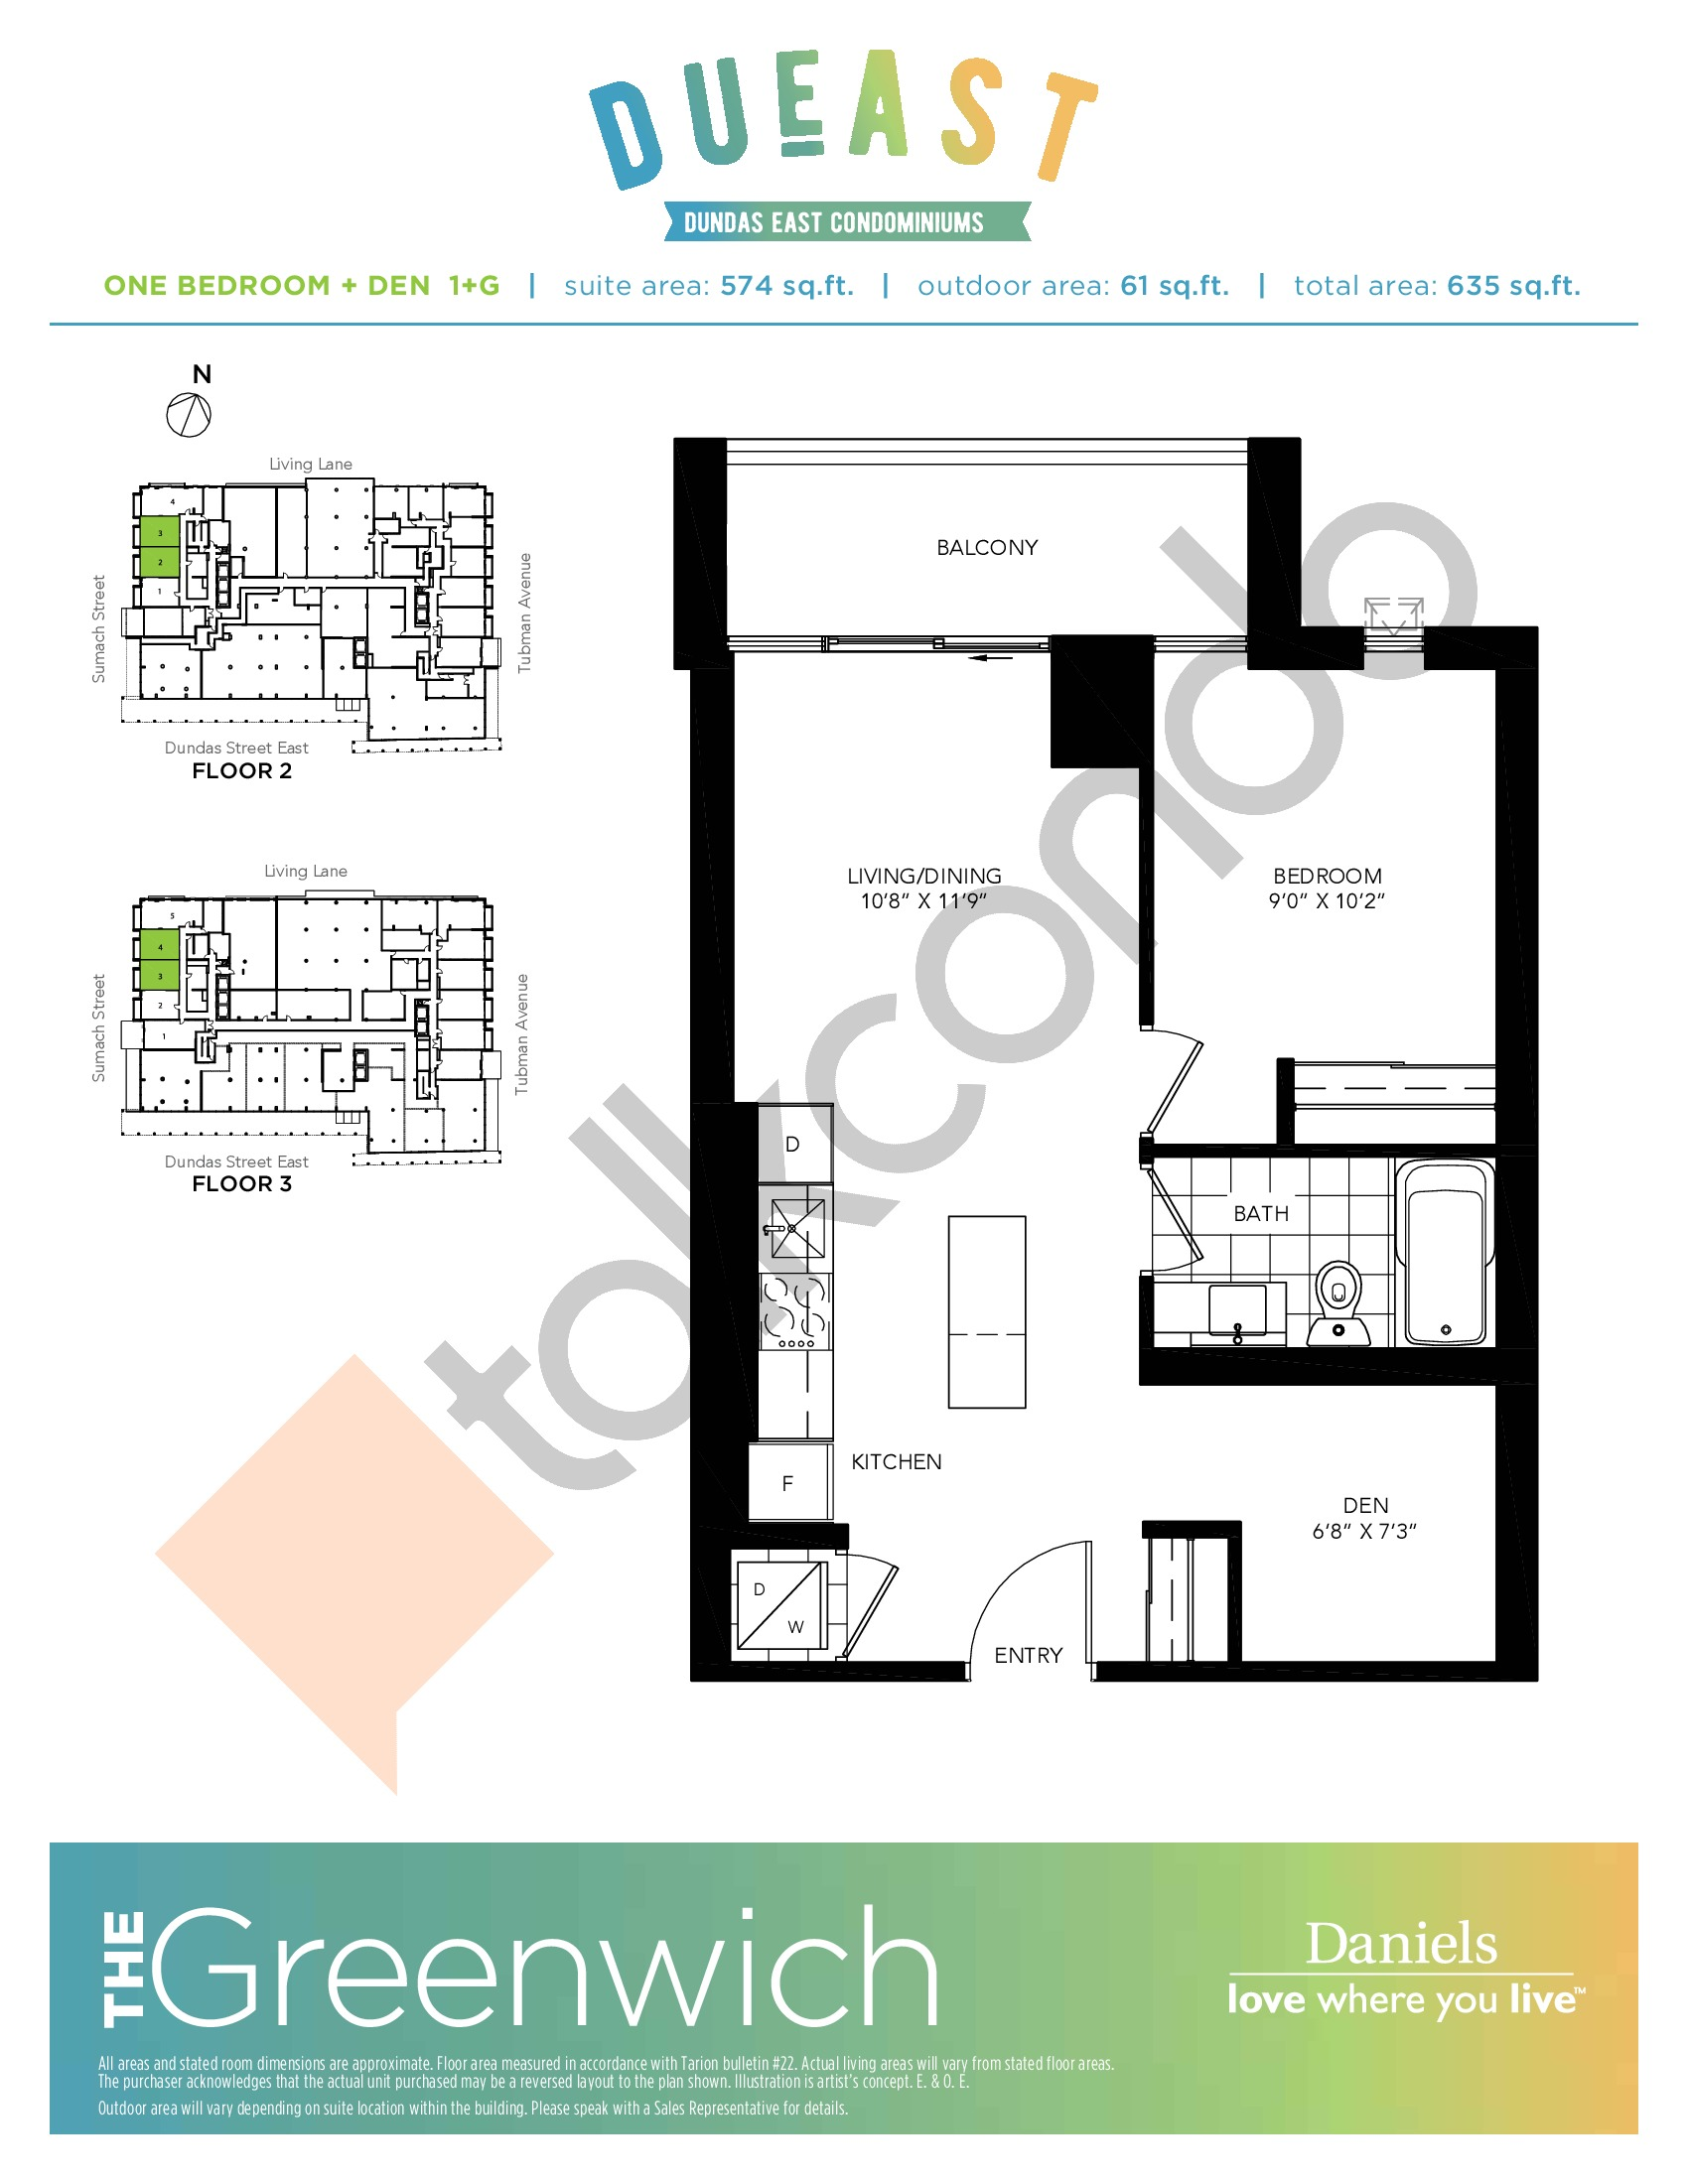 The Greenwich (1+G) Floor Plan at DuEast Condos - 574 sq.ft